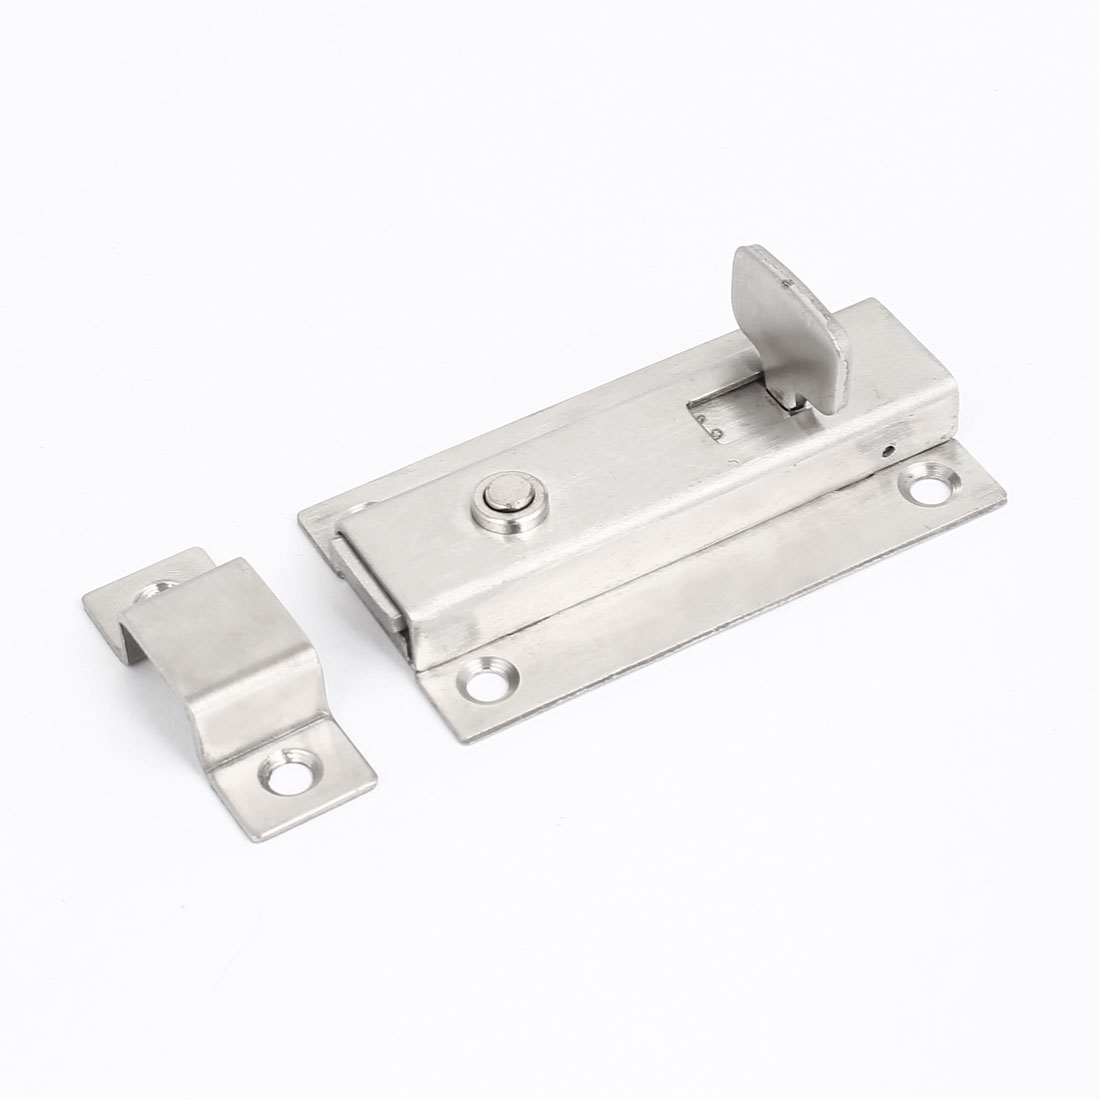 Home Window Cabint Doors Gates Stainless Steel Automatic Bolt Latch